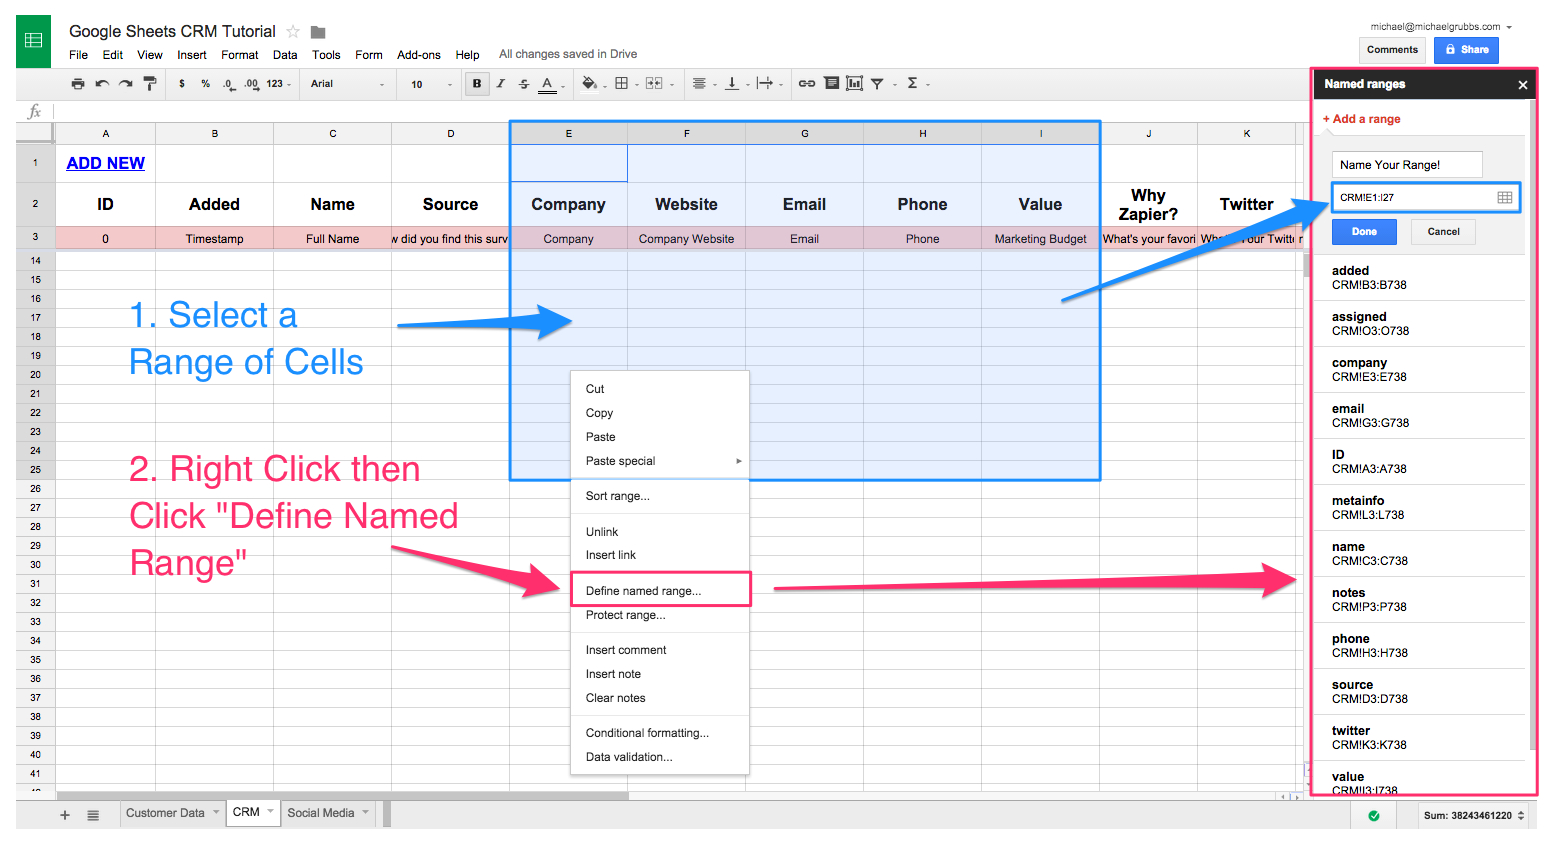 Crm Spreadsheet Intended For Spreadsheet Crm: How To Create A Customizable Crm With Google Sheets